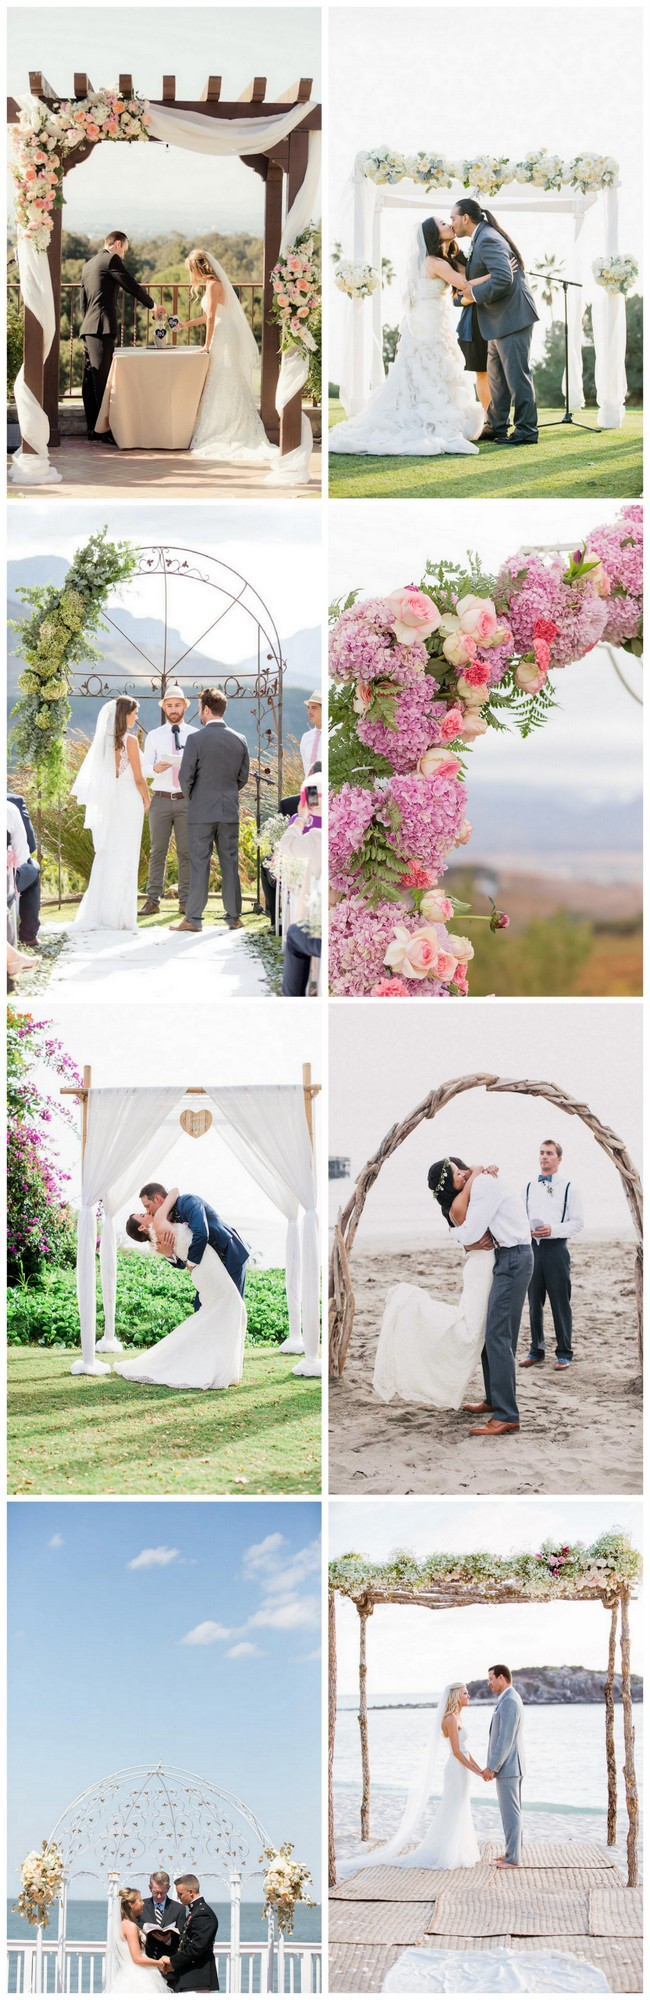 Amazing Wedding Arch Ideas 01